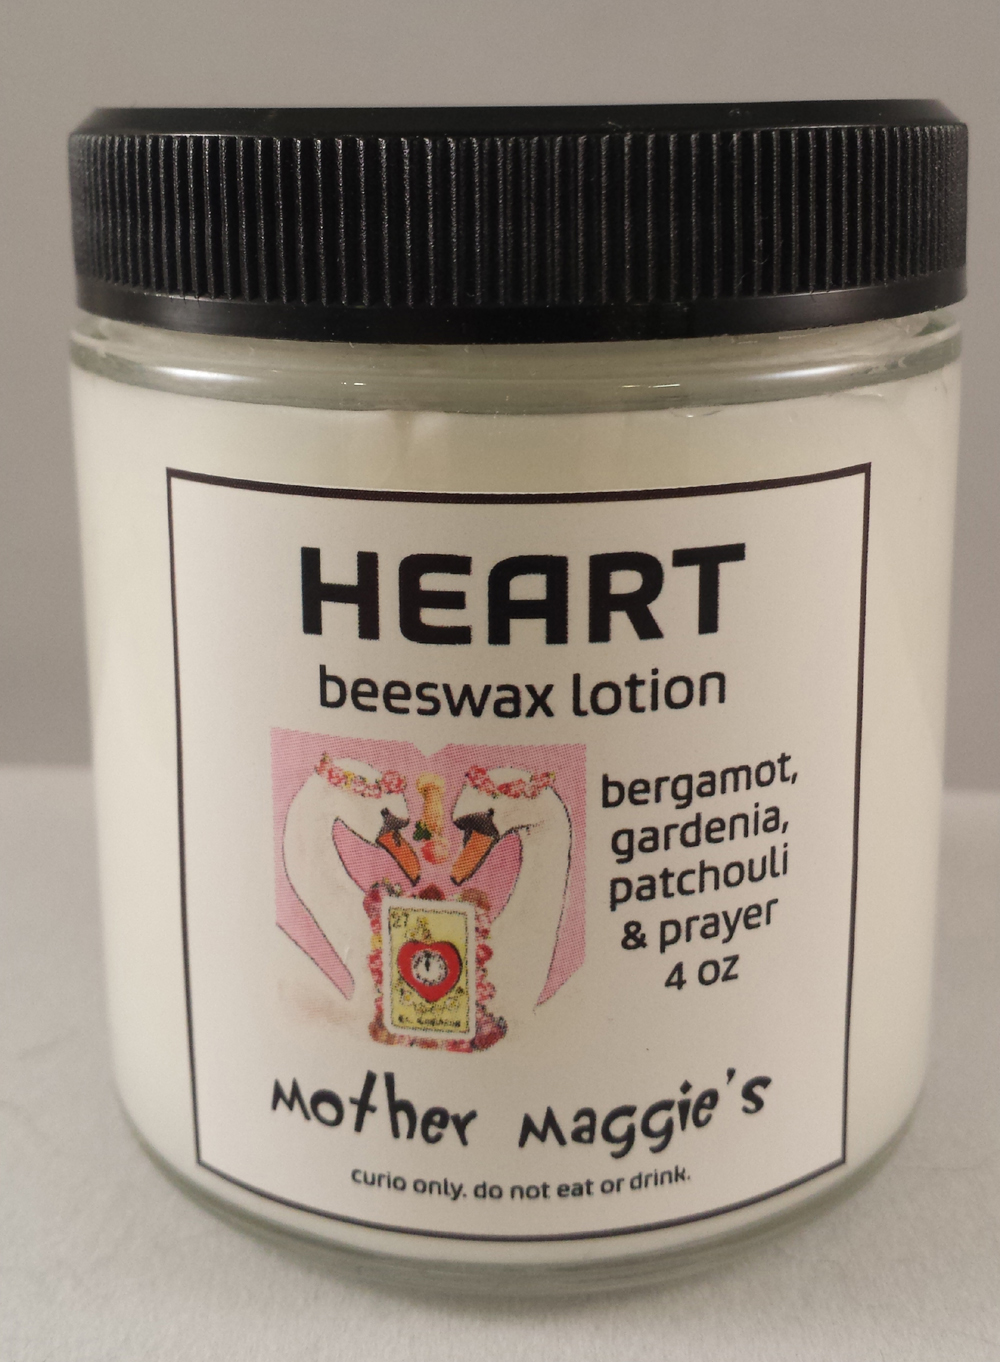 Mother Maggie's Condition Beeswax Lotions